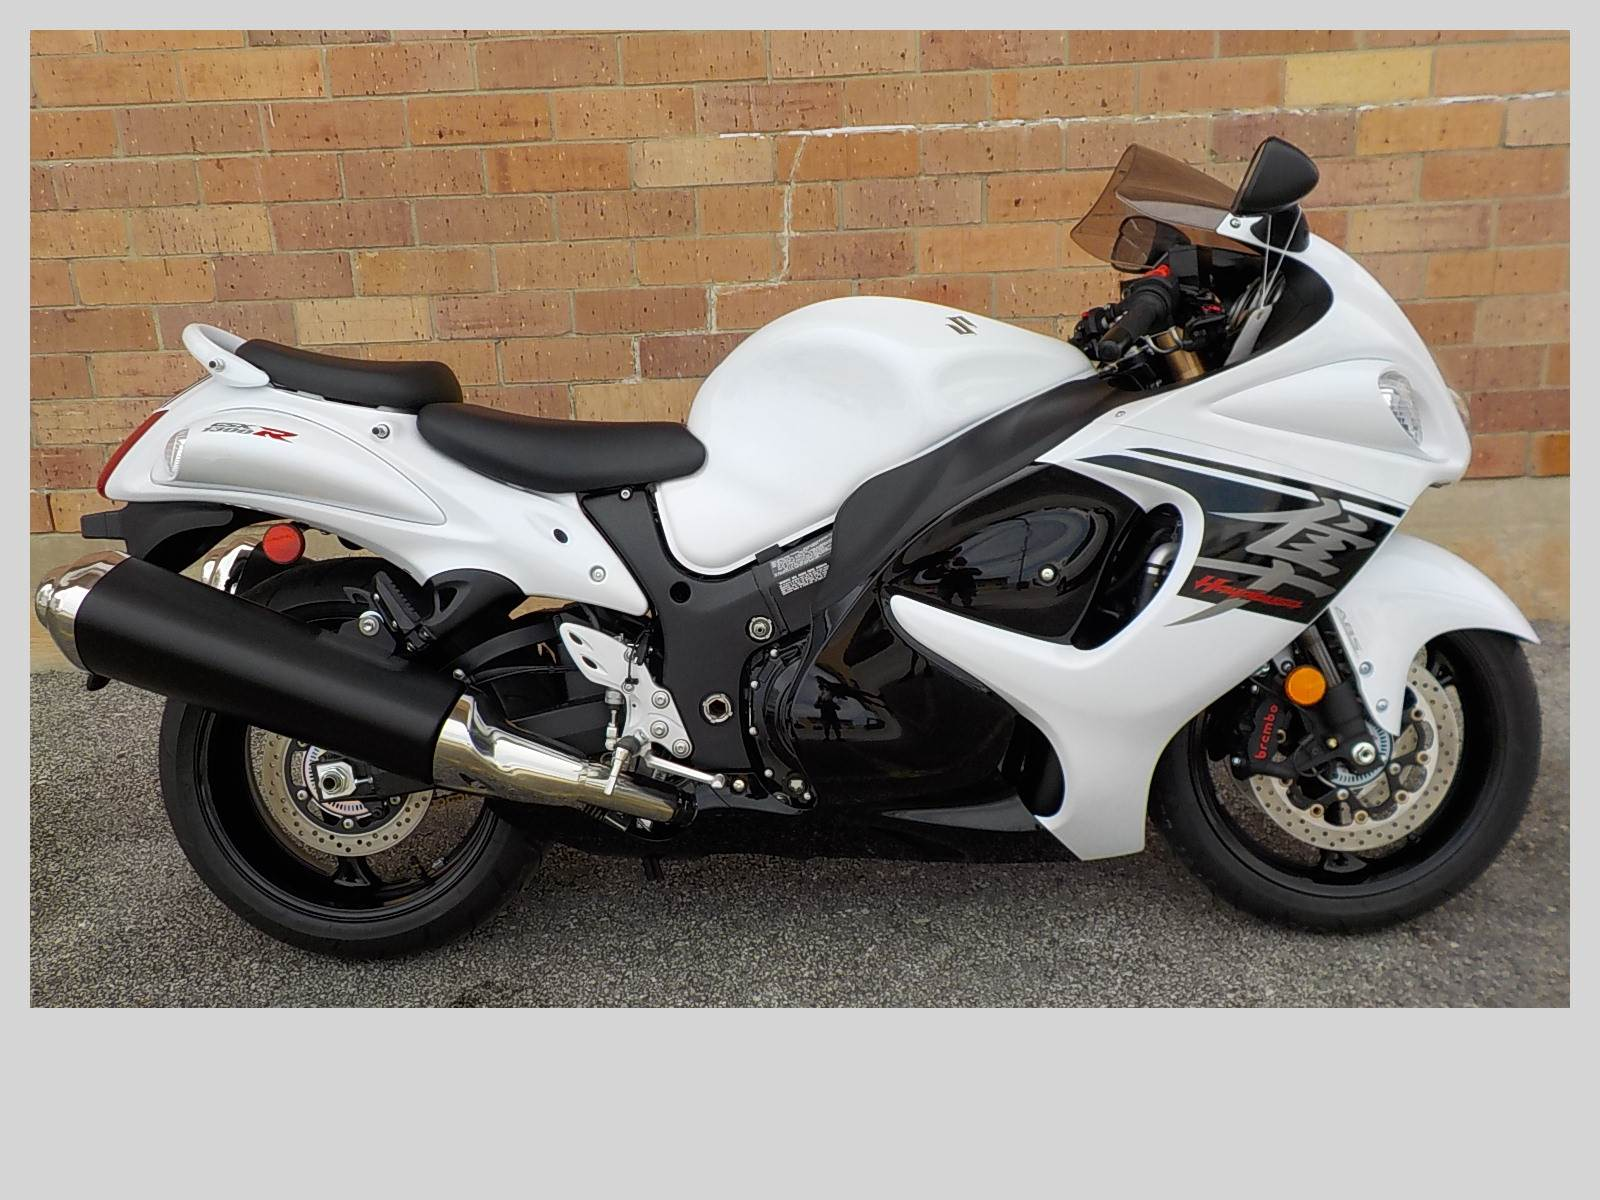 Used 2017 Suzuki Hayabusa Motorcycles in San Antonio, TX | Stock ...